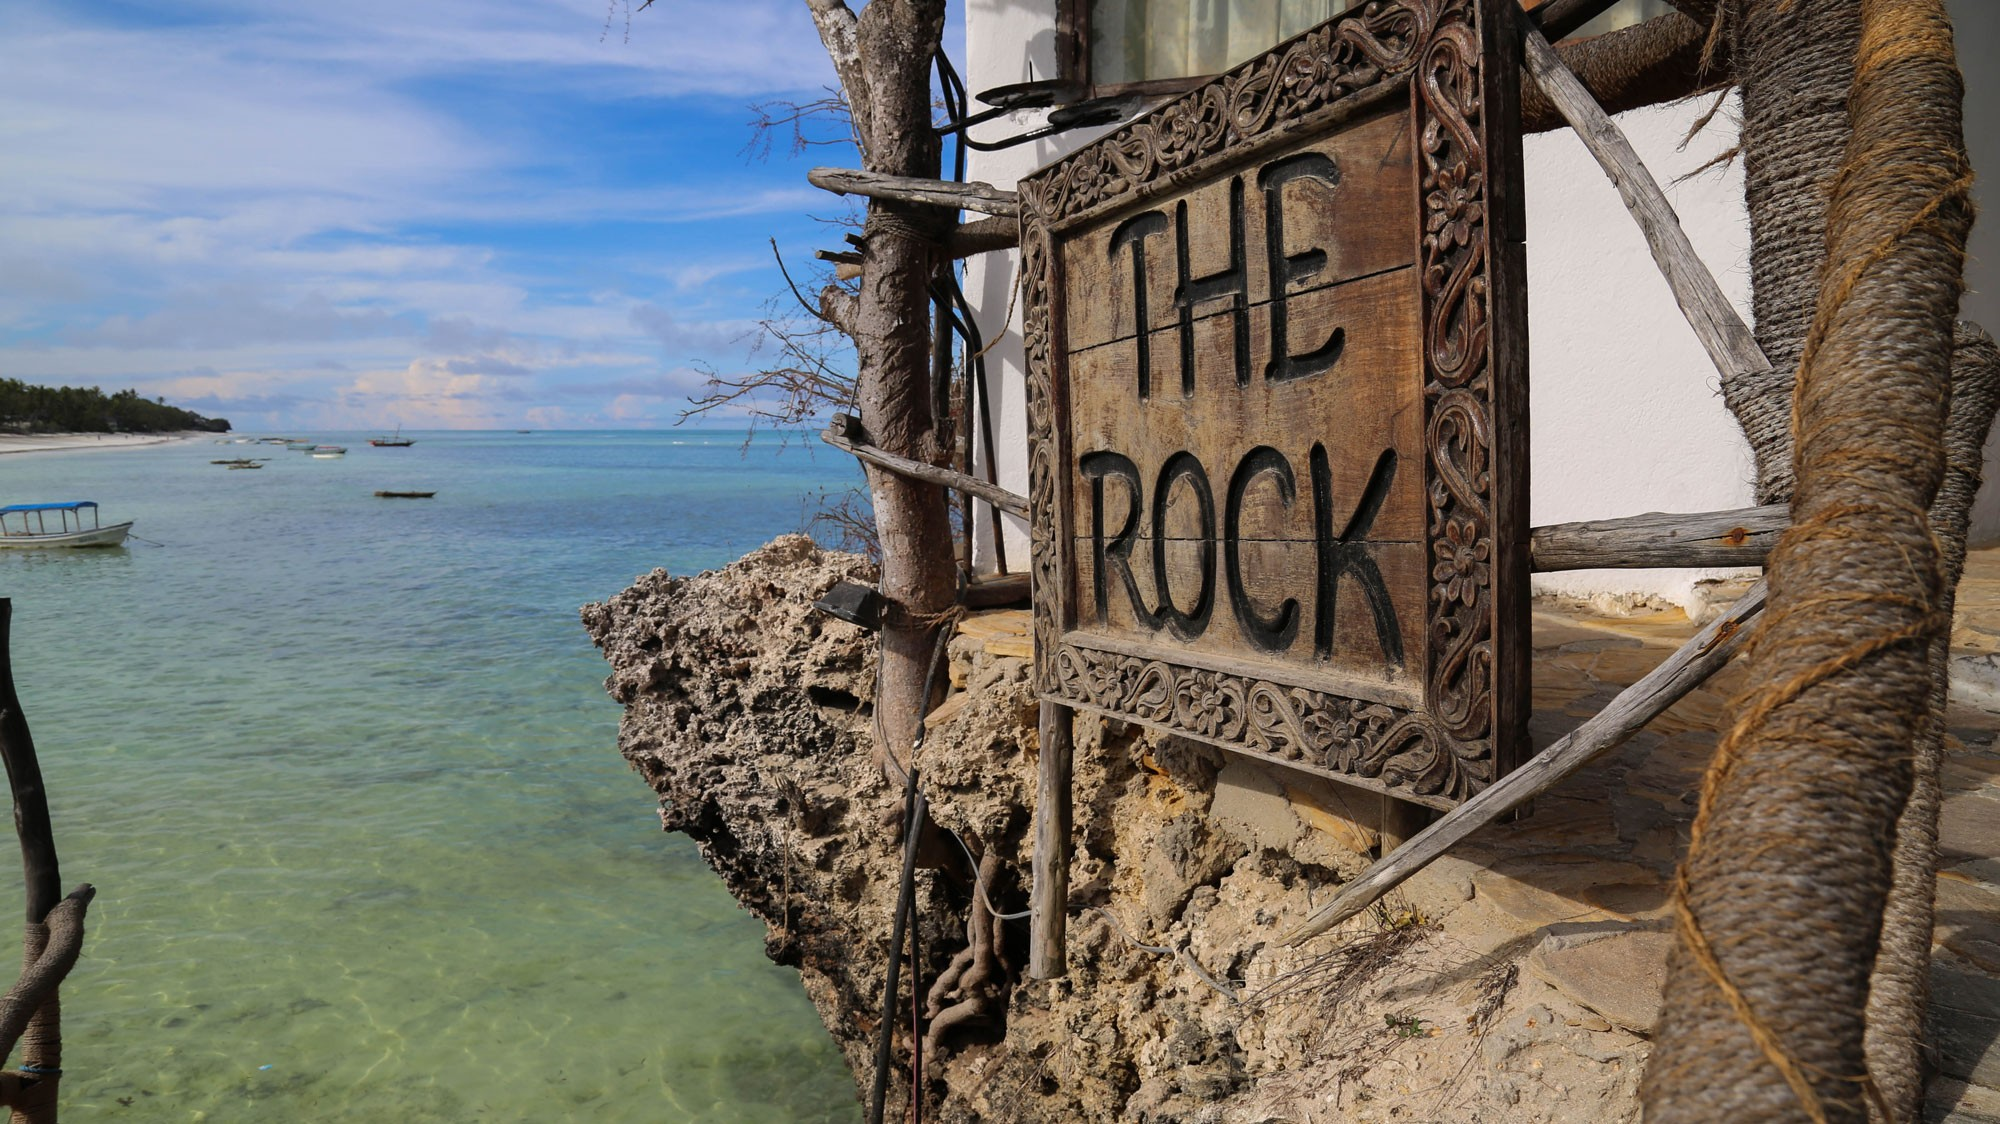 The-Rock's-sign